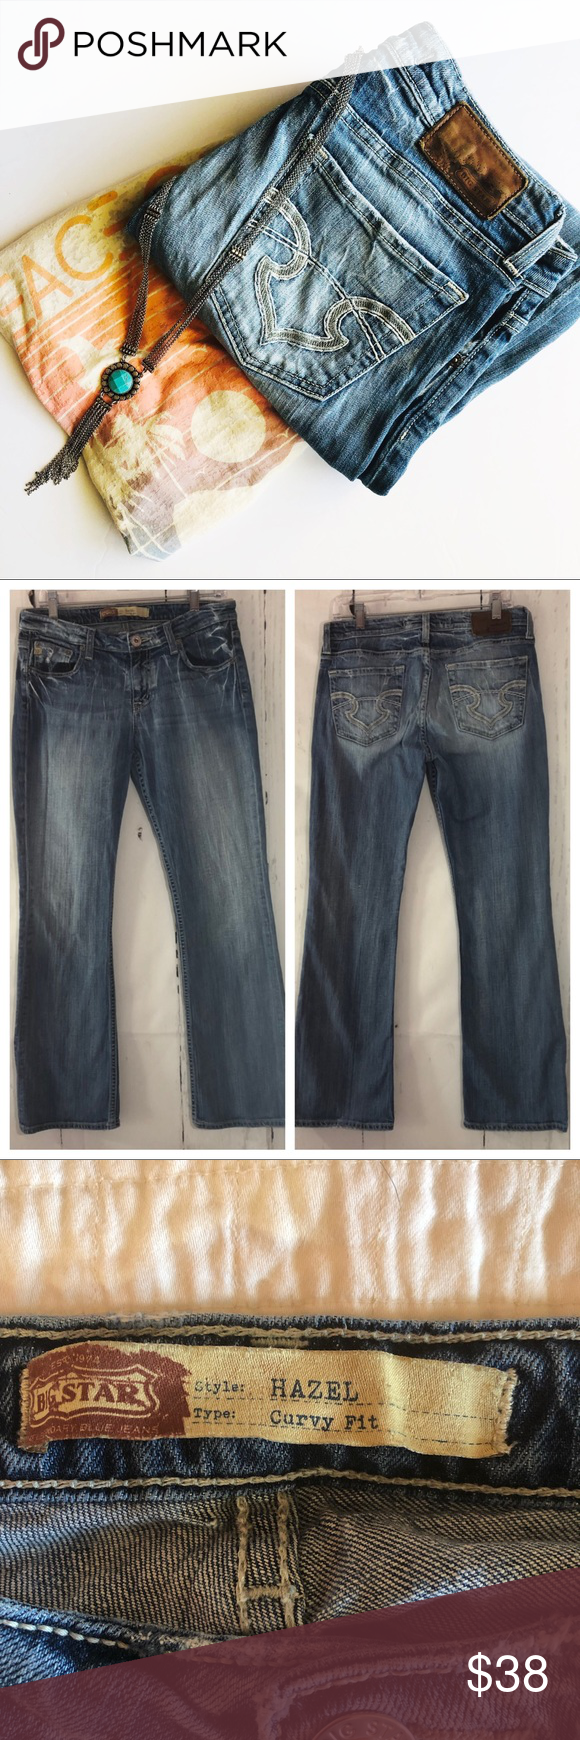 ab615cd4c24 BIG STAR | Hazel Curvy Fit Bootcut Jeans 30R Perfectly broken in and ready  to wear